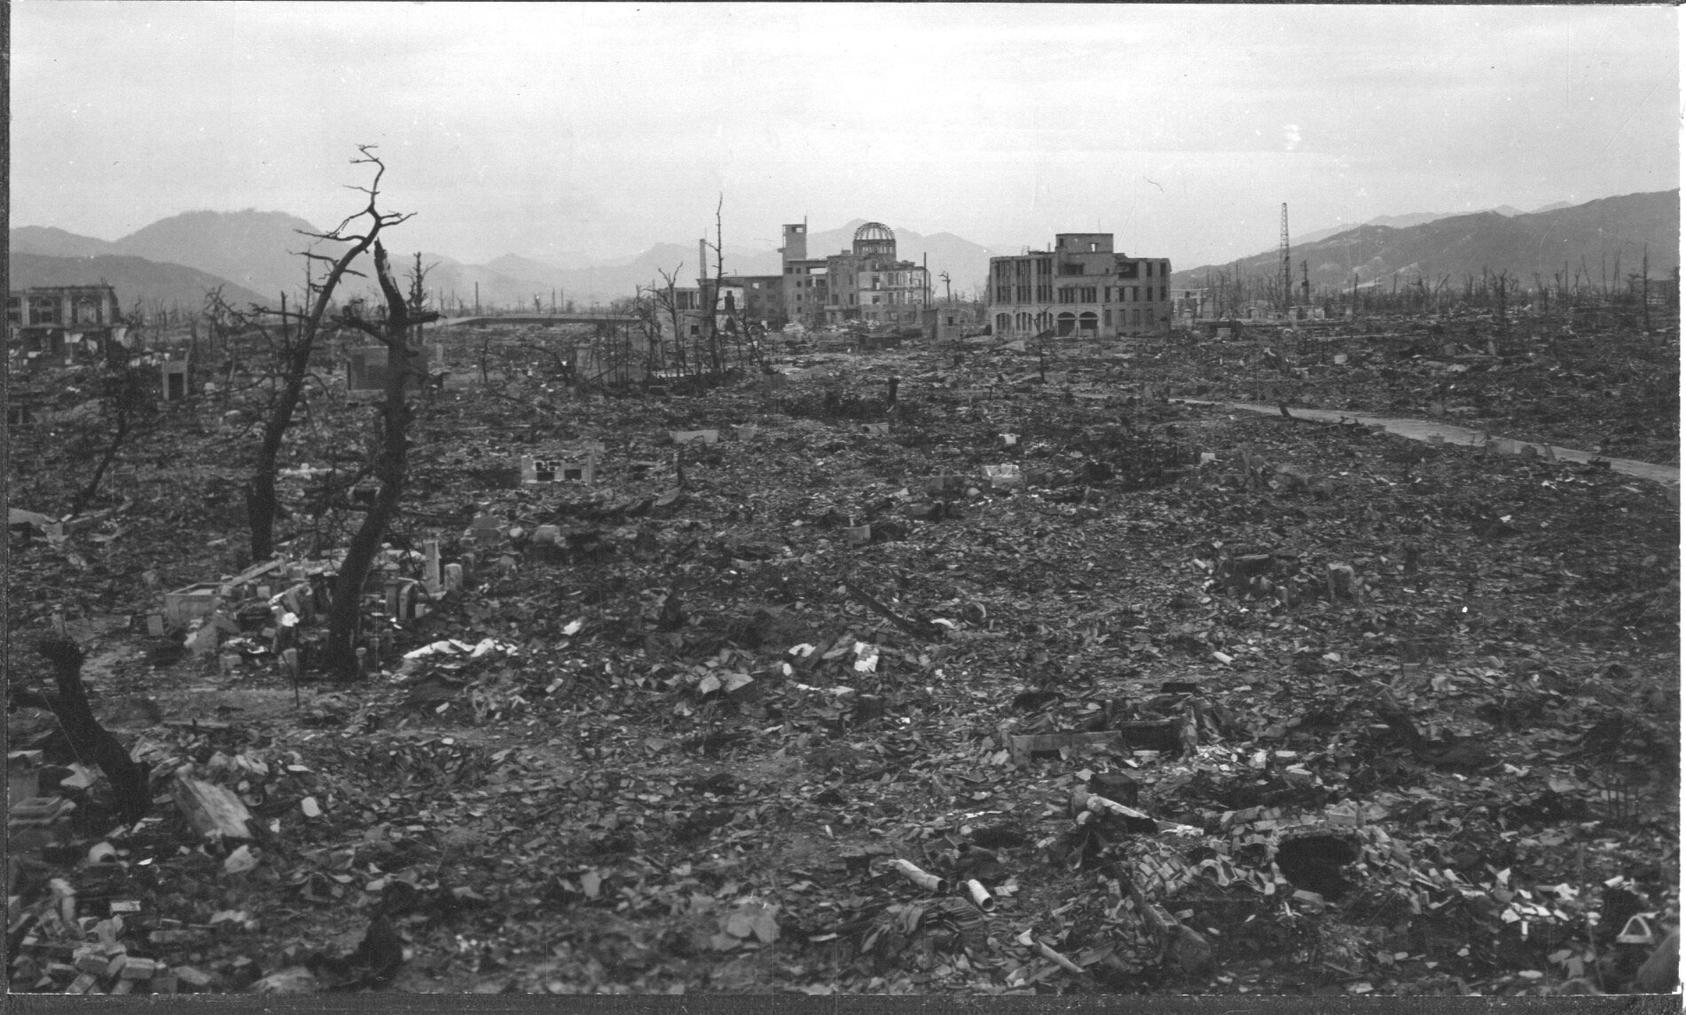 The center of Hiroshima as Navy Lieutenant Mark Hatfield saw it soon after the atomic bombing. (U.S. National Archives)